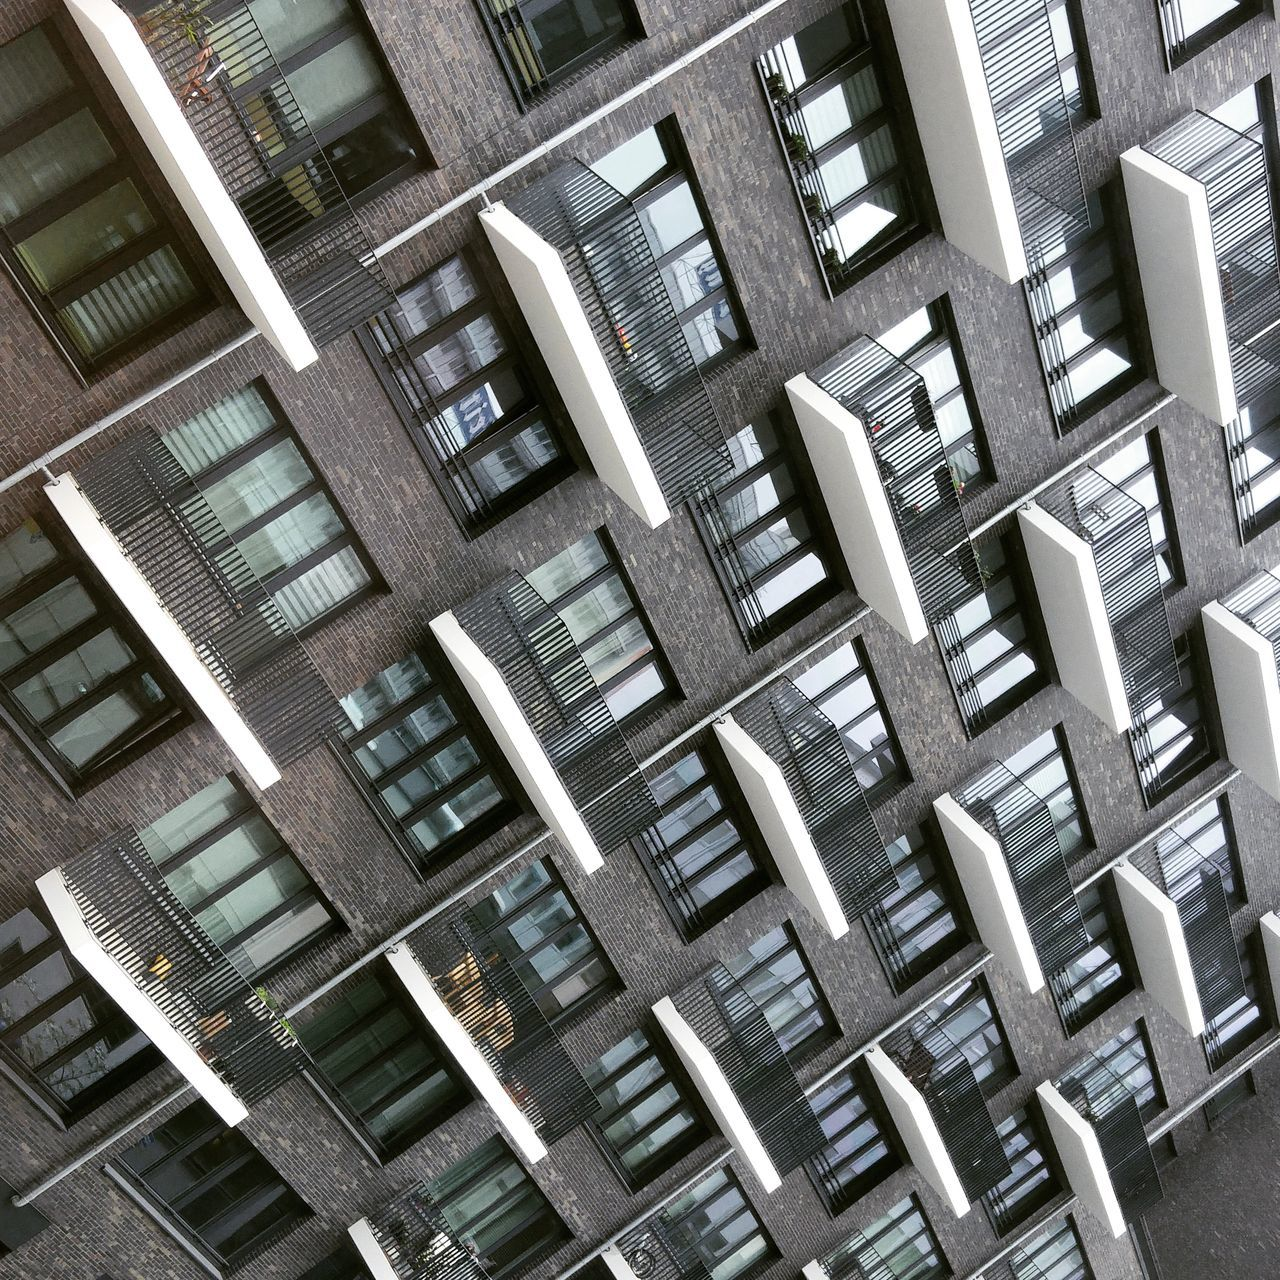 Beautiful stock photos of feuer, Apartment, Architectural Feature, Architecture, Building